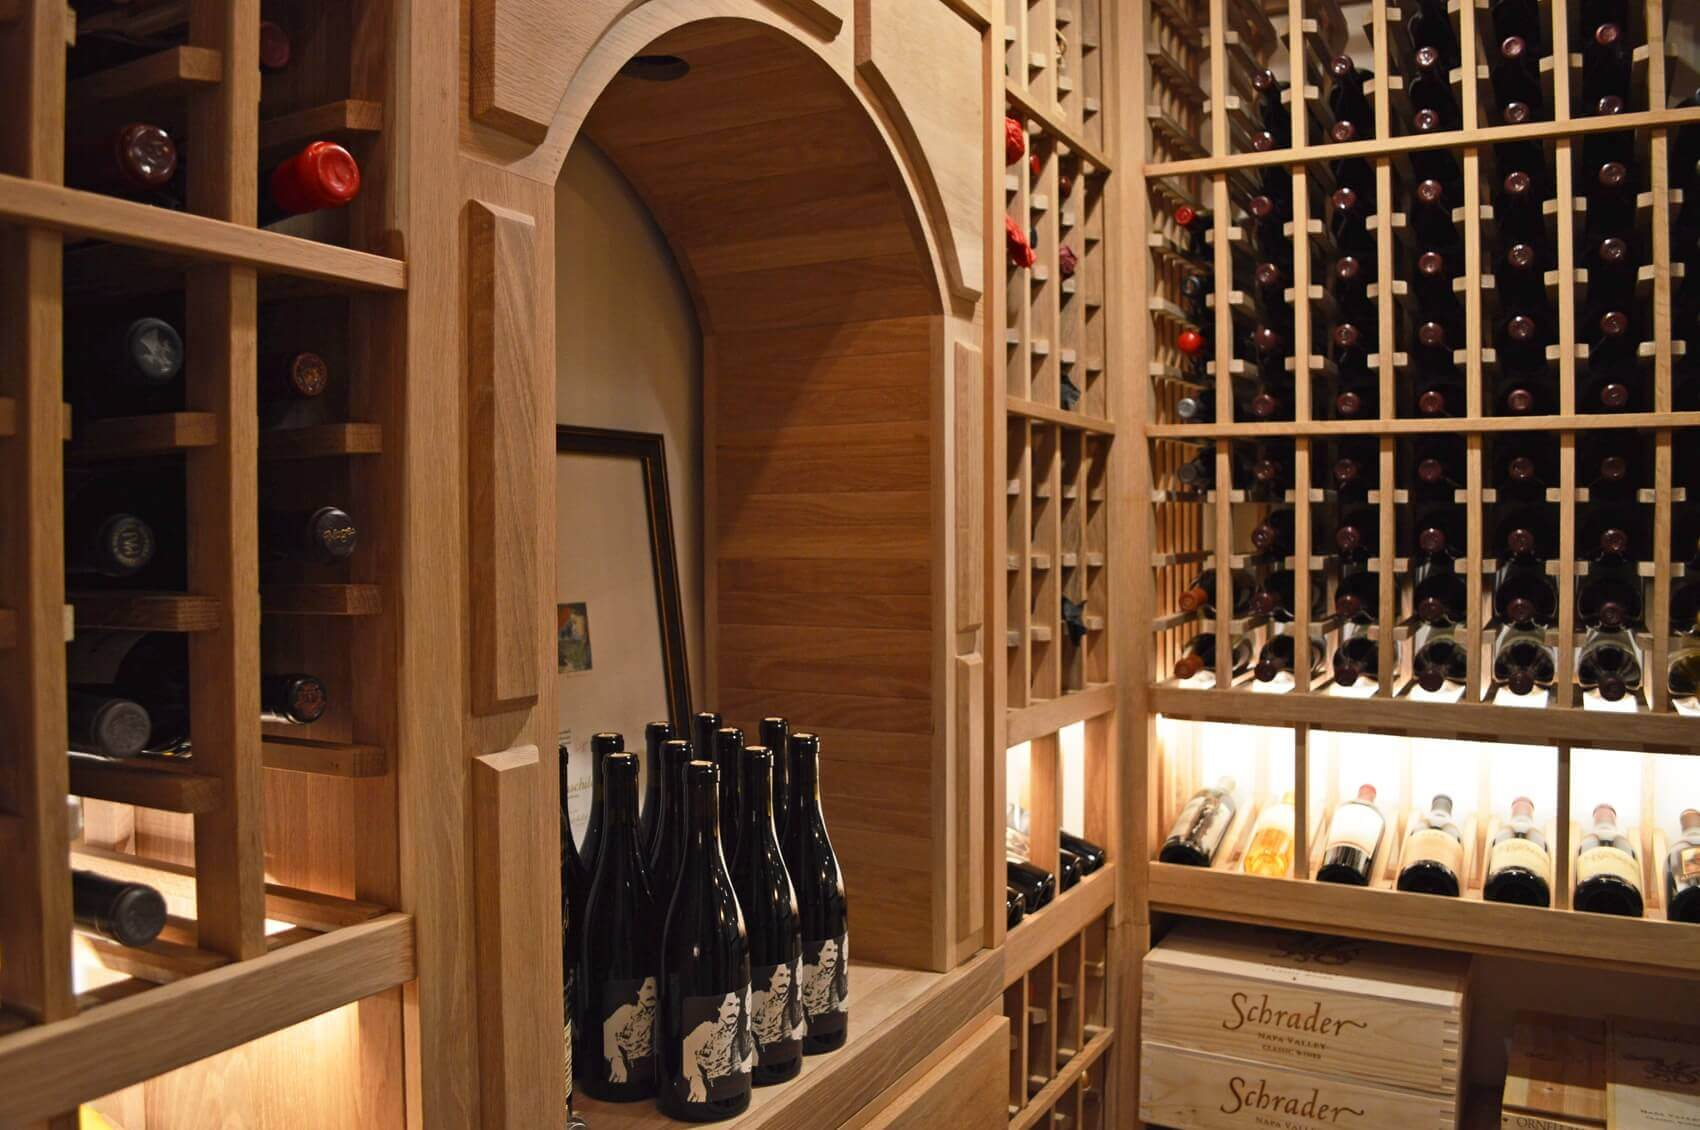 This arch was custom built by the team to provide an area for decantation of wines and other activities inside the wine room.